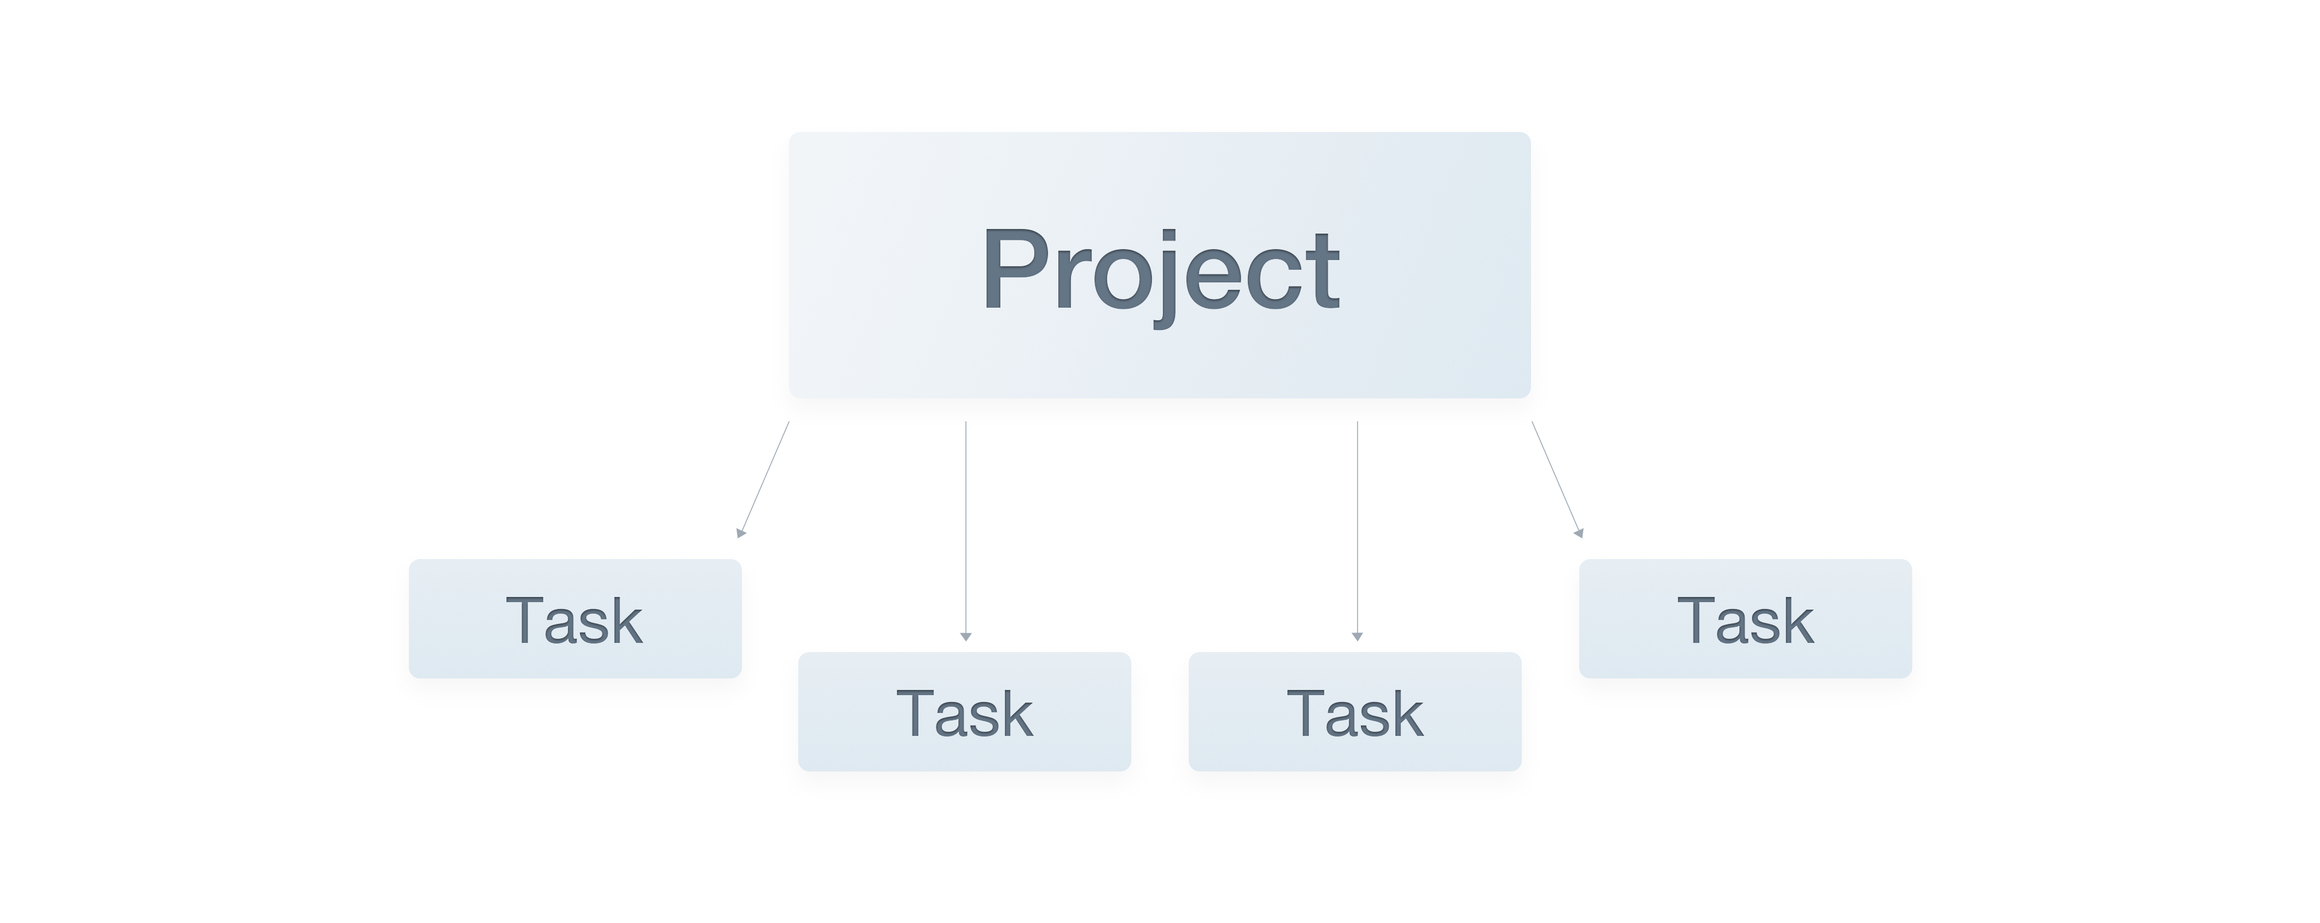 project-is-a-sum-of-tasks